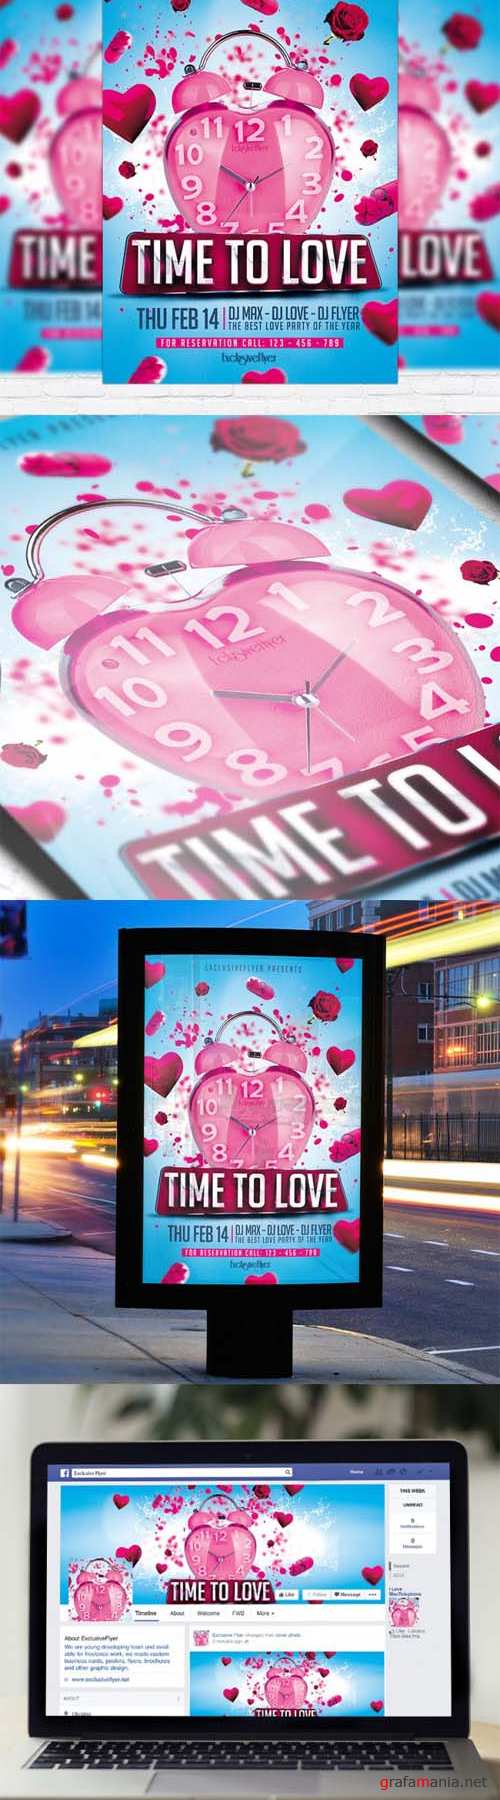 Flyer Template - Time to Love + Facebook Cover